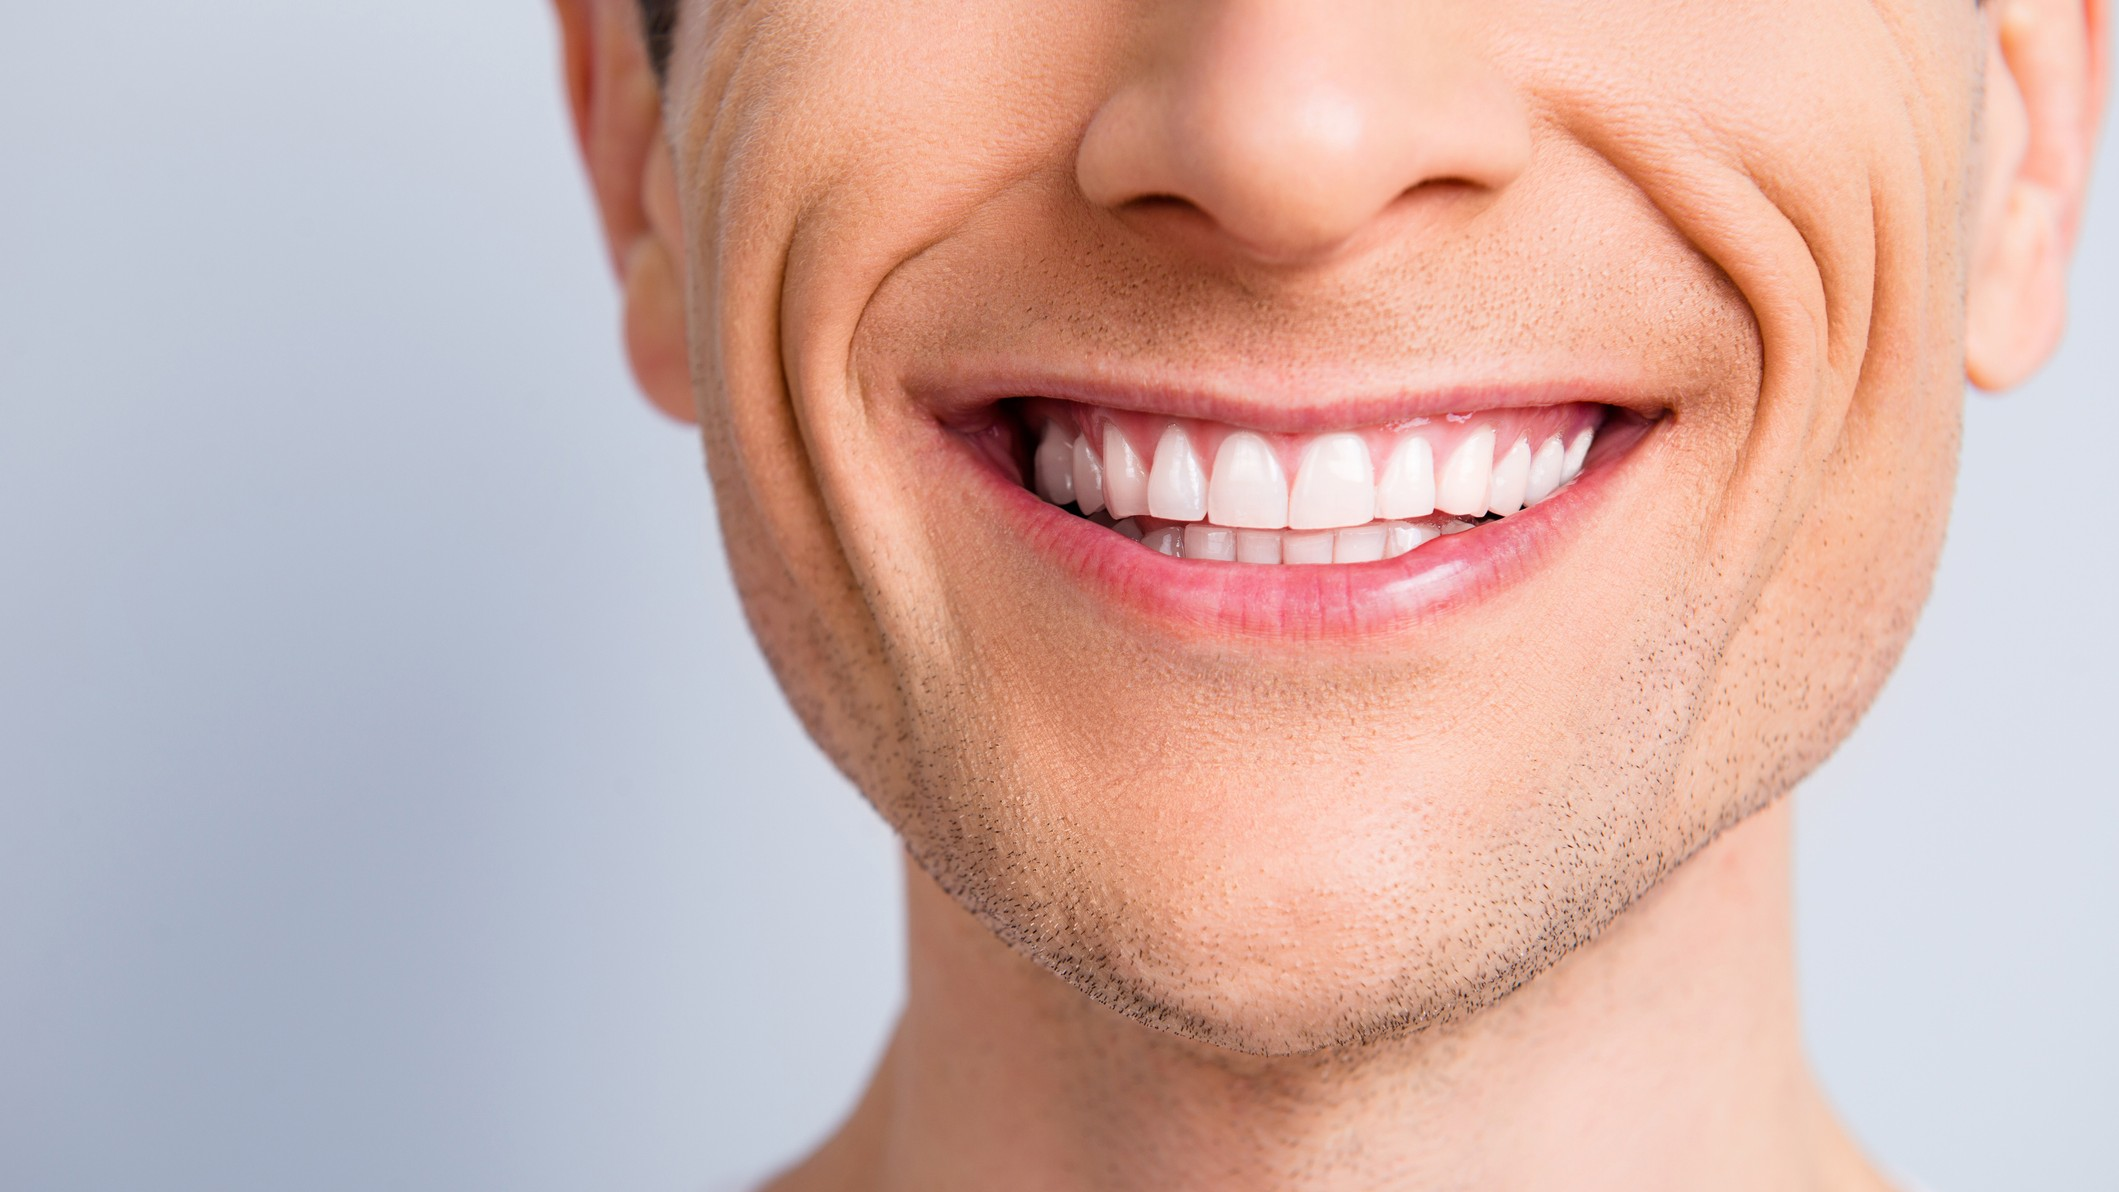 asx share price gain represented by closeup of man with big smile